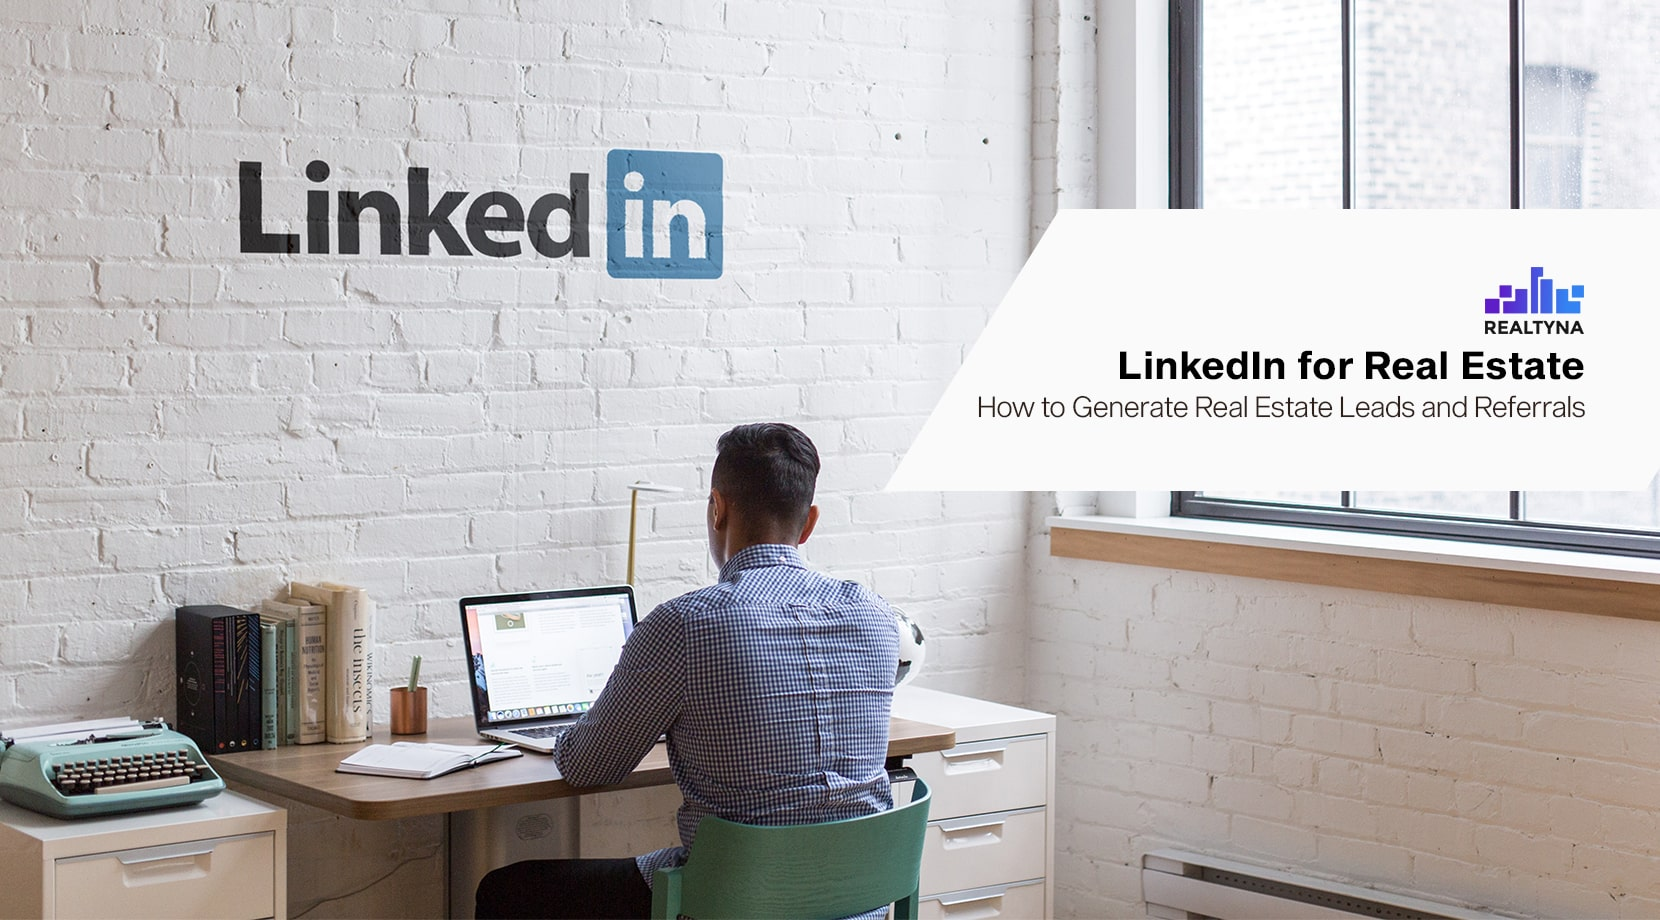 LinkedIn for real estate